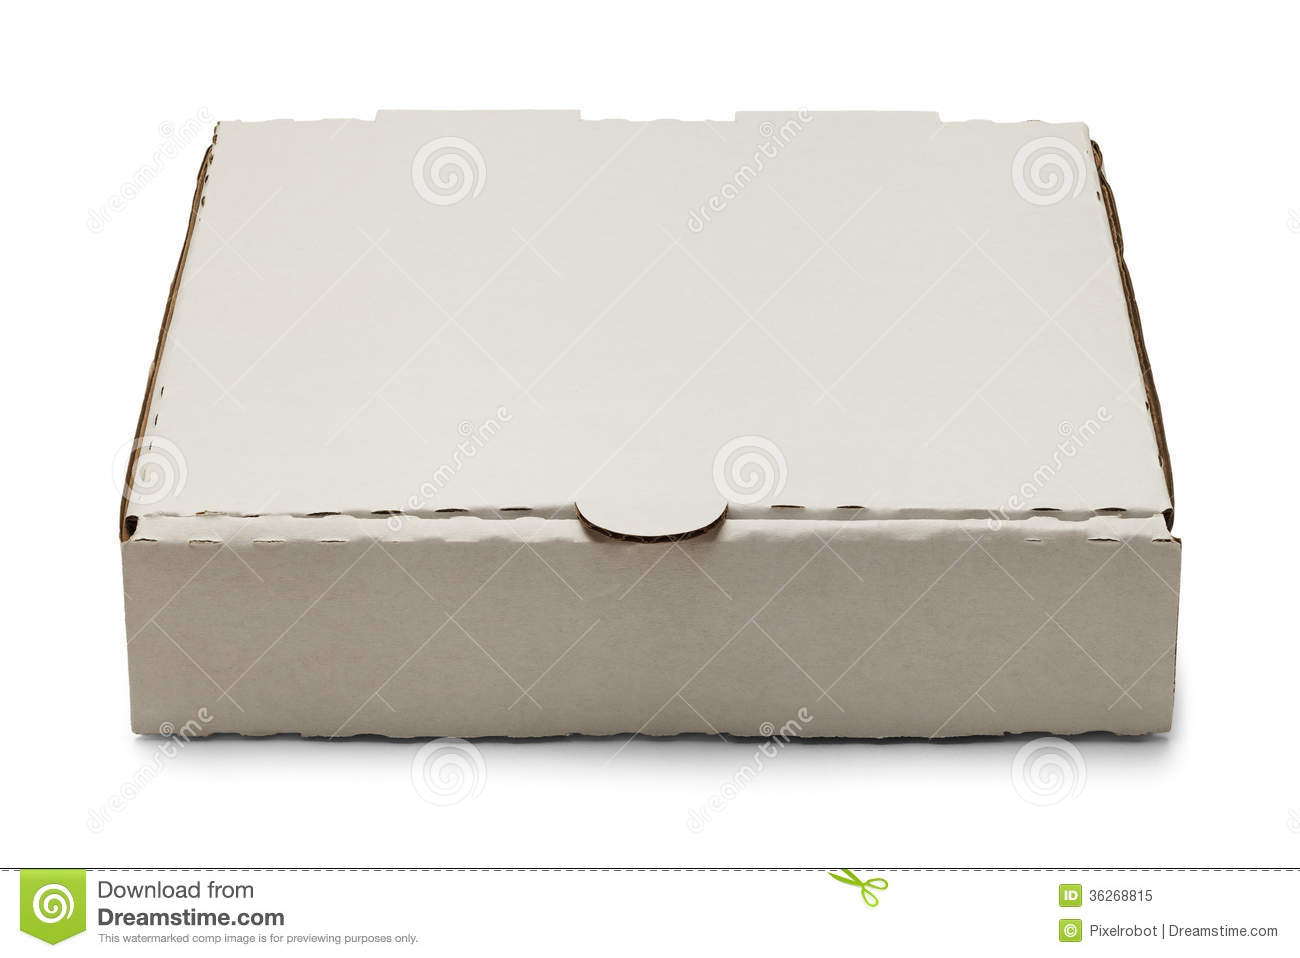 Blank White Cardboard Pizza Box Isolated on White Background.